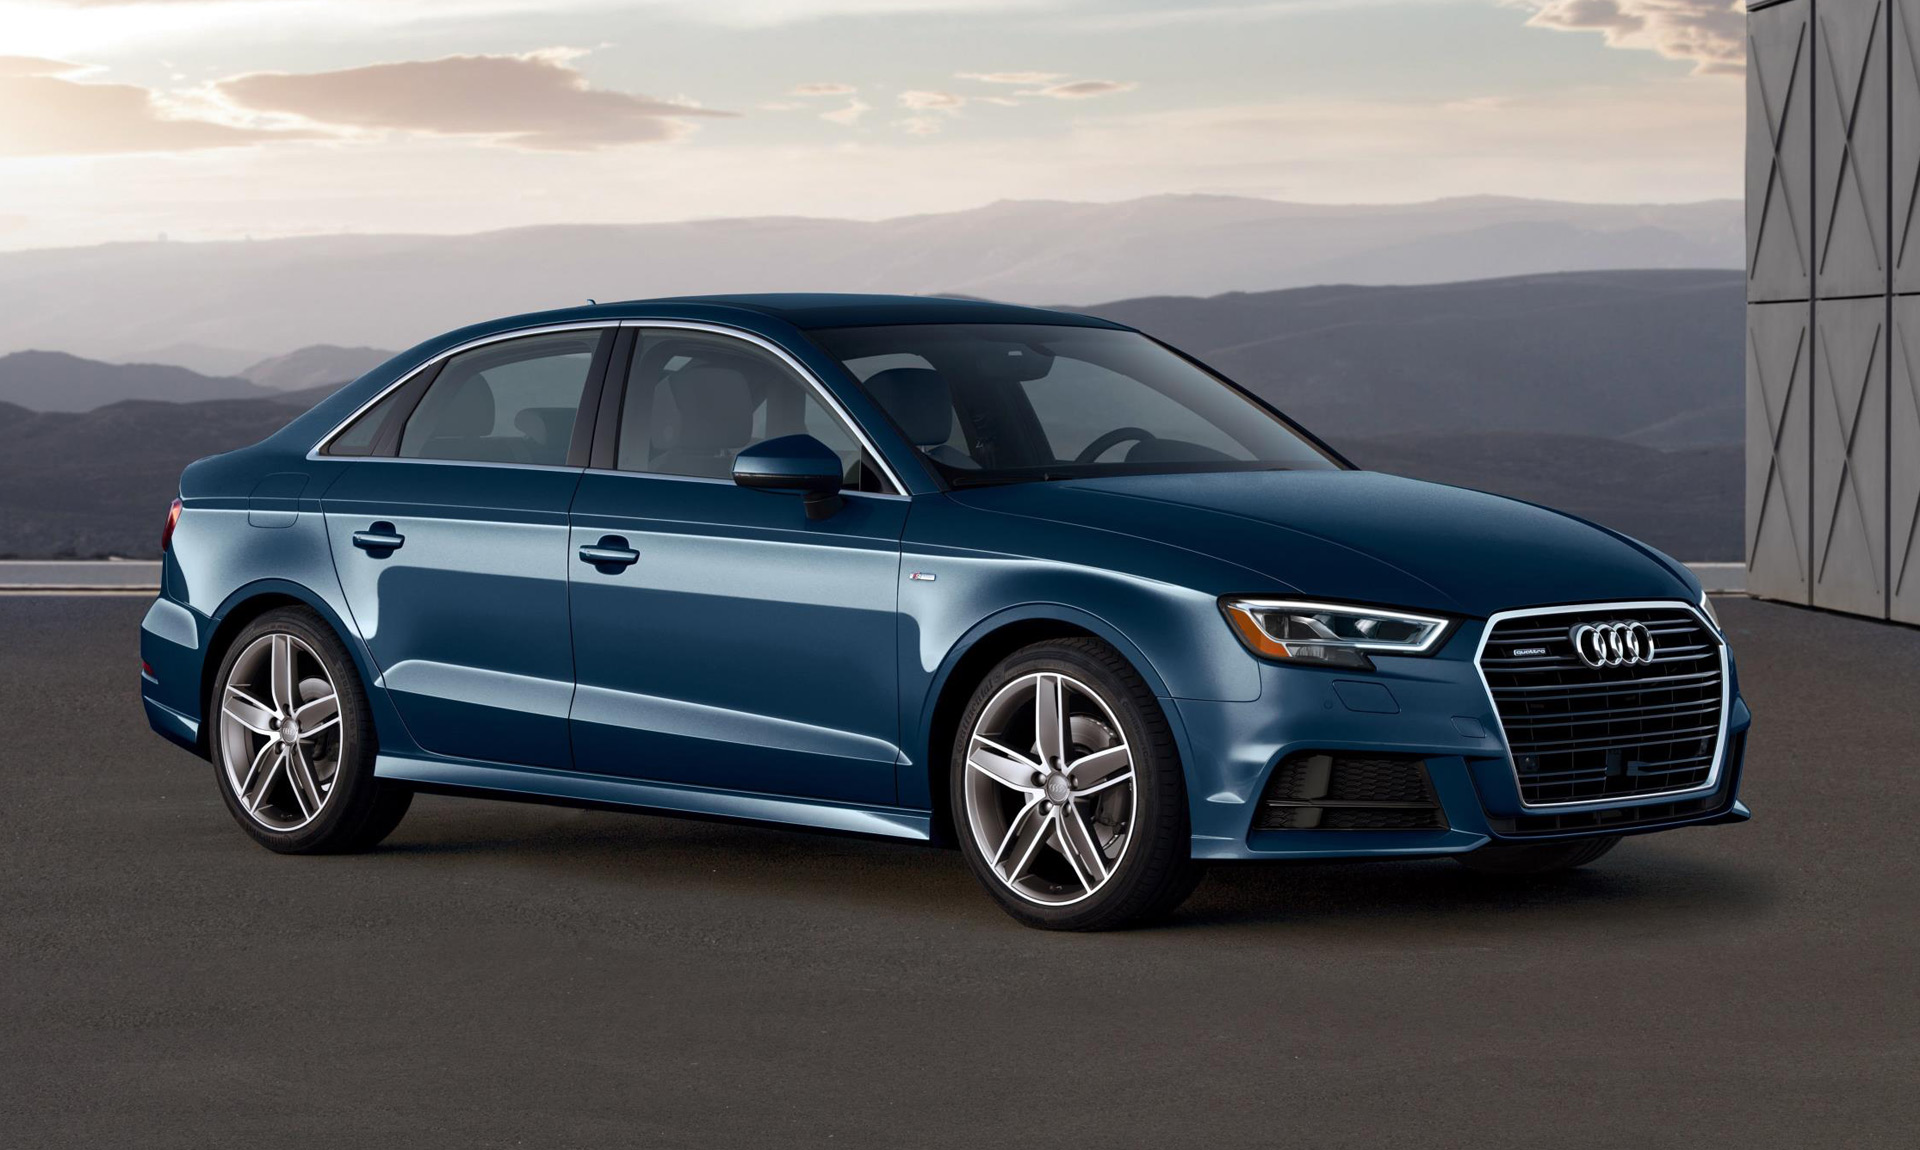 2017 Audi A3 FWD models more power 7 speed dual clutch